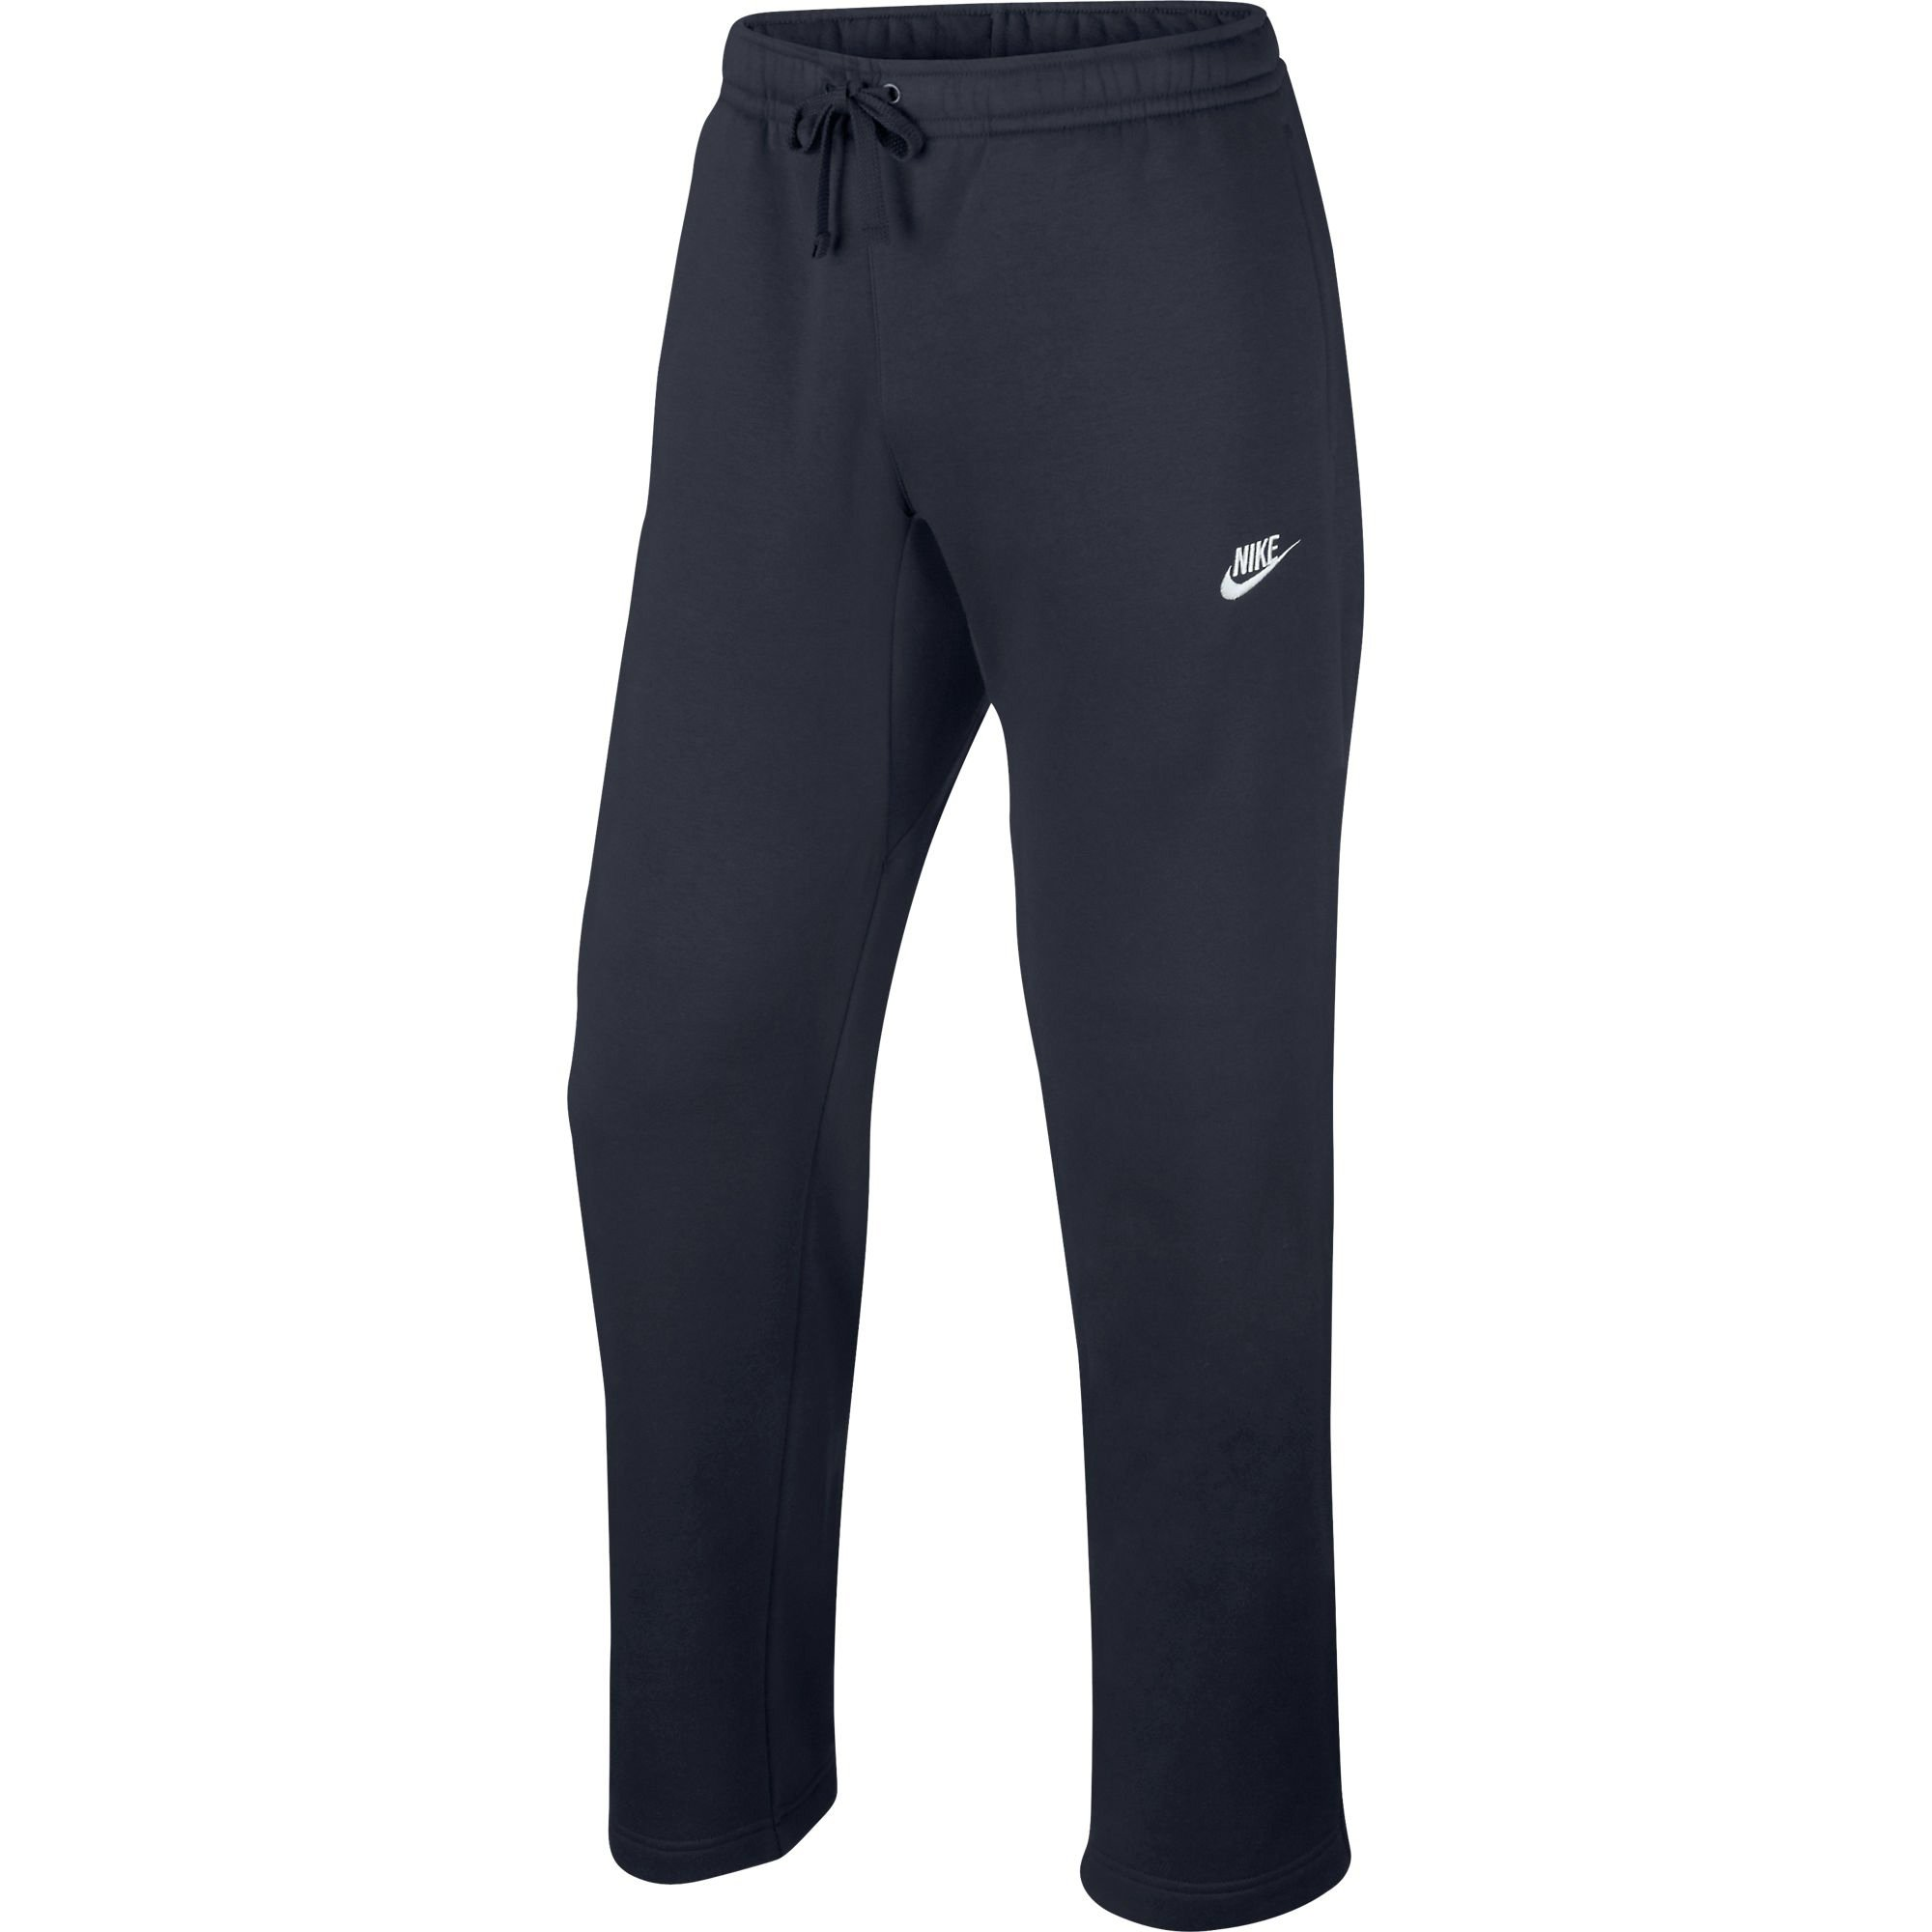 Nike Mens Open Hem Fleece Club Sweatpants Obsidian Heather/White 804395-473 Size Small by Nike (Image #1)